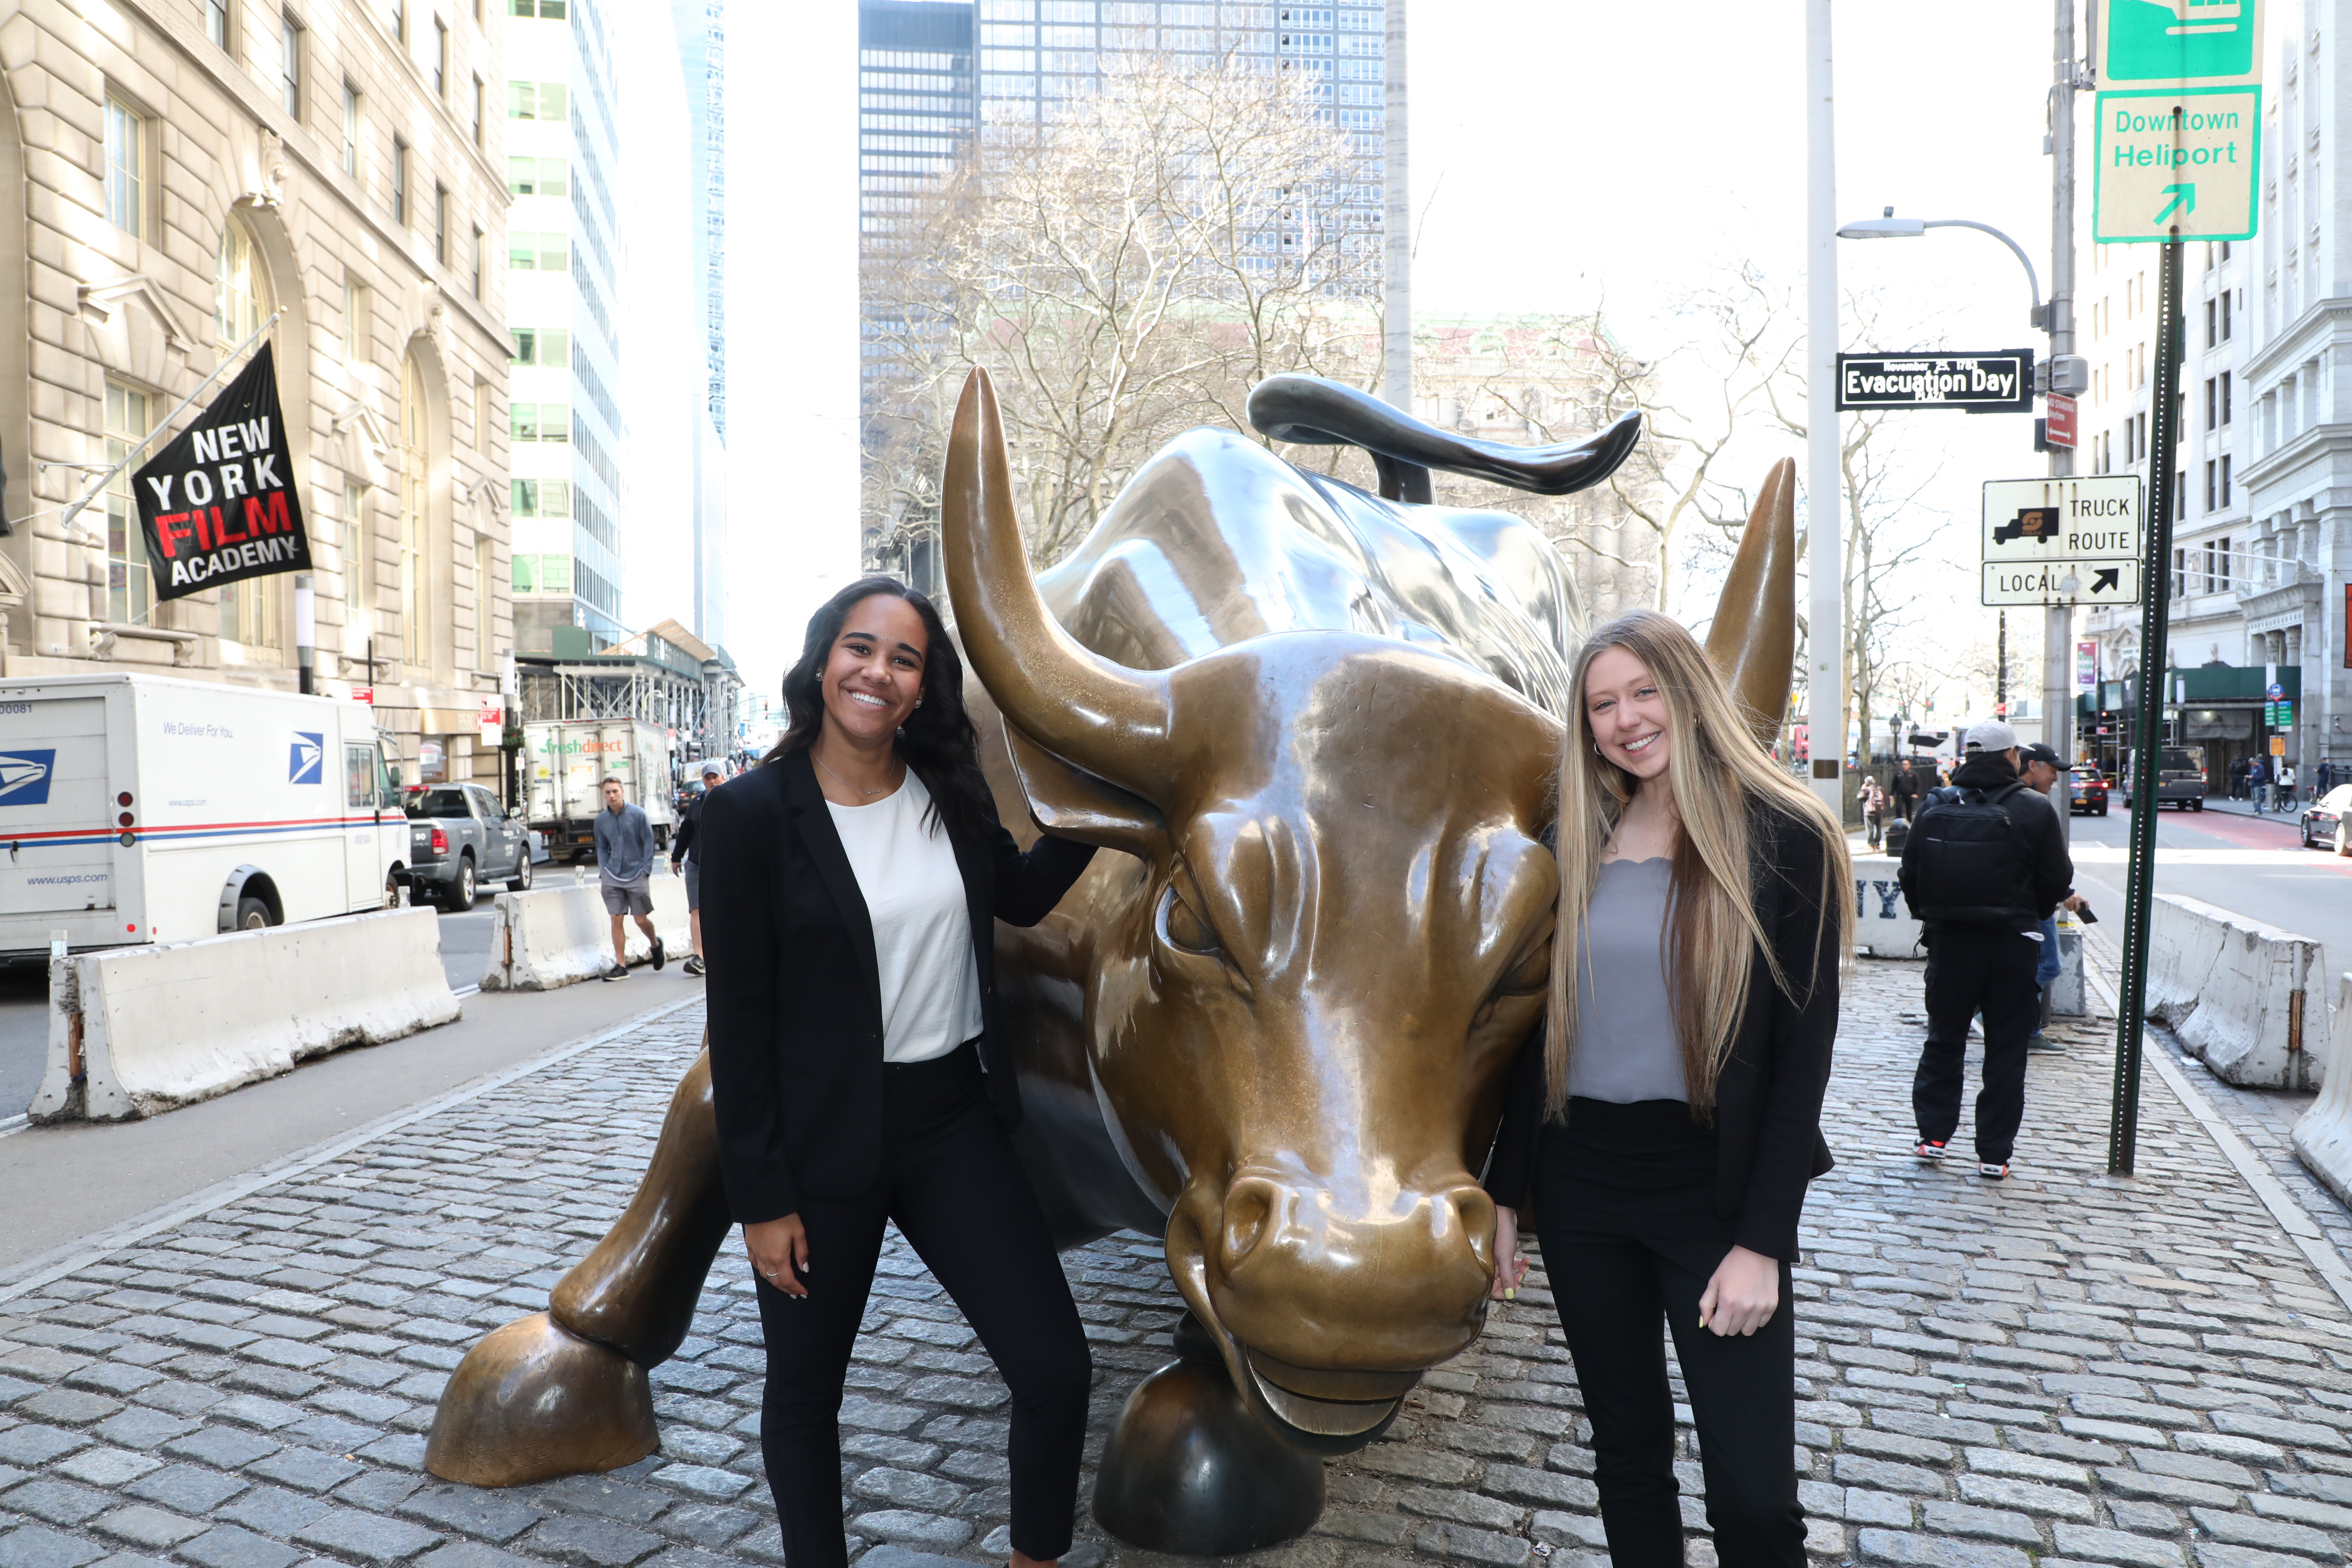 Wall Street Scholars next to the Wall Street Bull